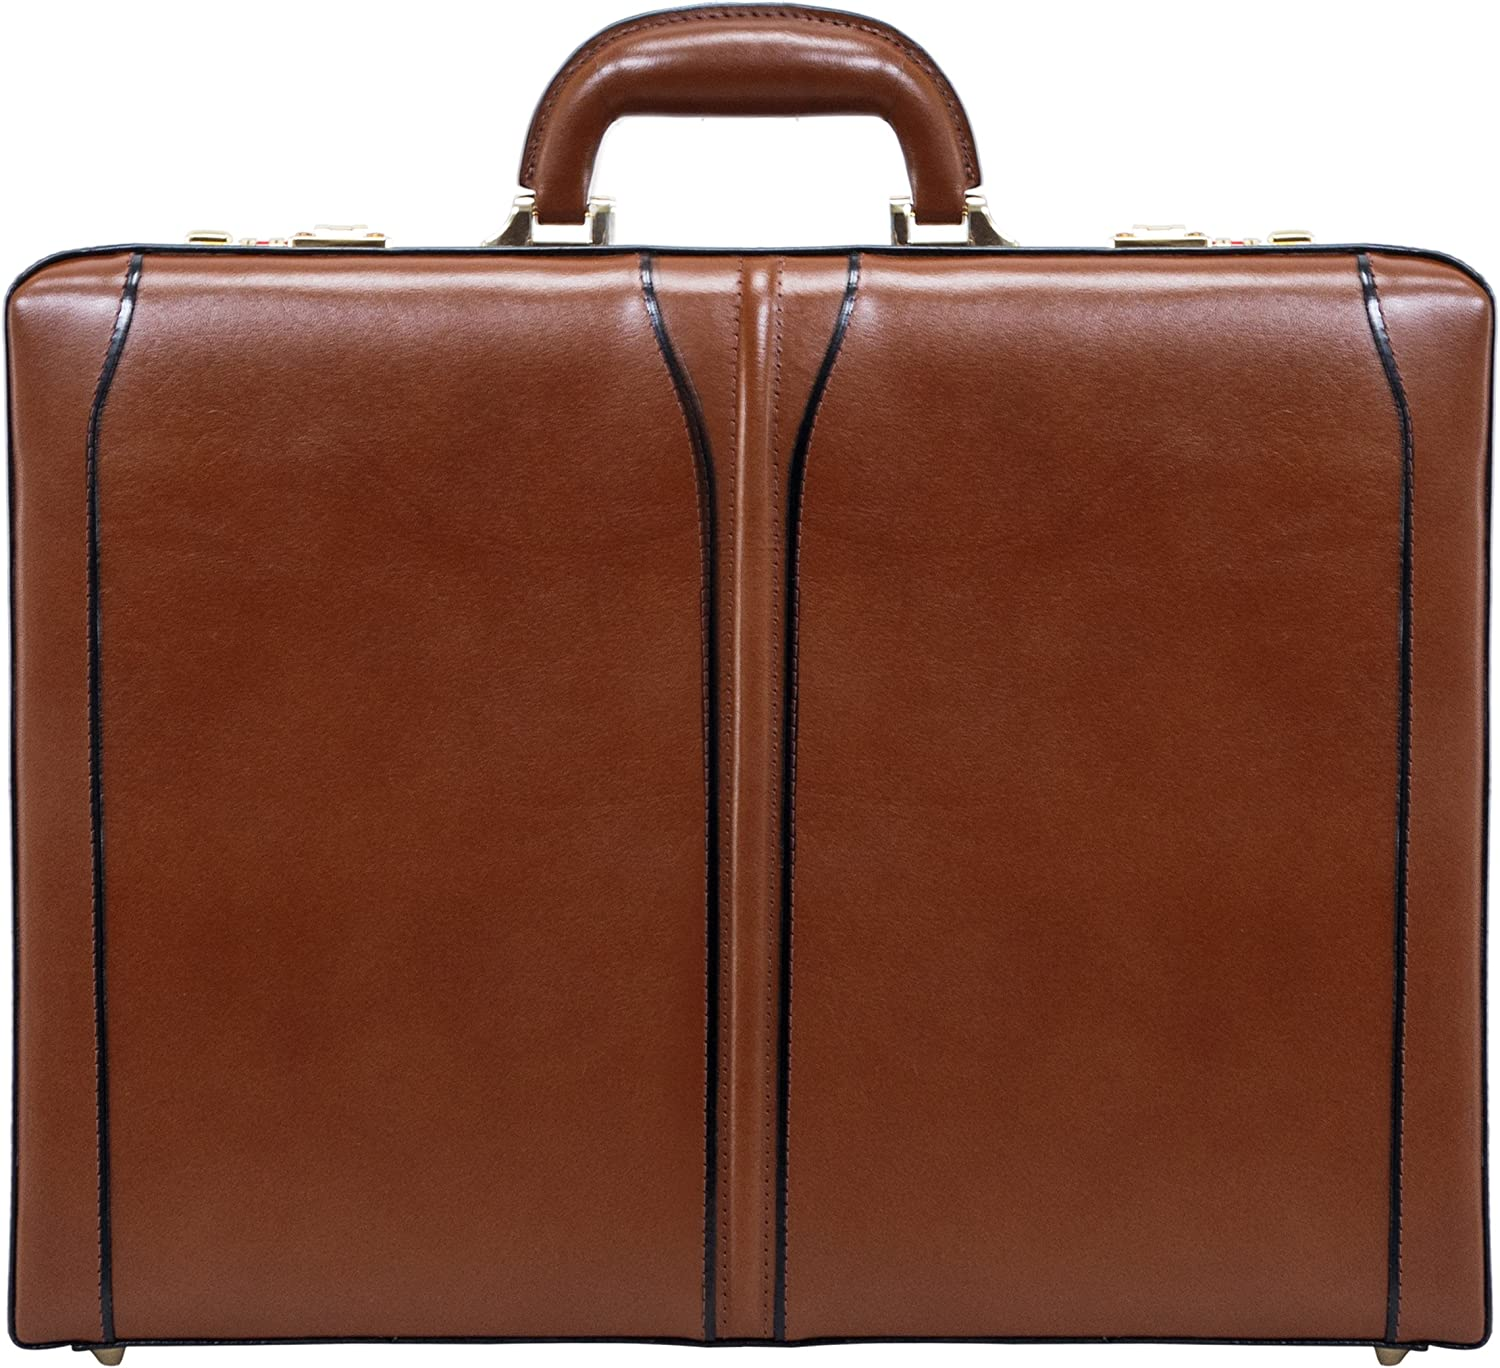 Leather 3.5 Attach/é Briefcase Lawson 80454 V Series McKlein Top Grain Cowhide Leather Brown